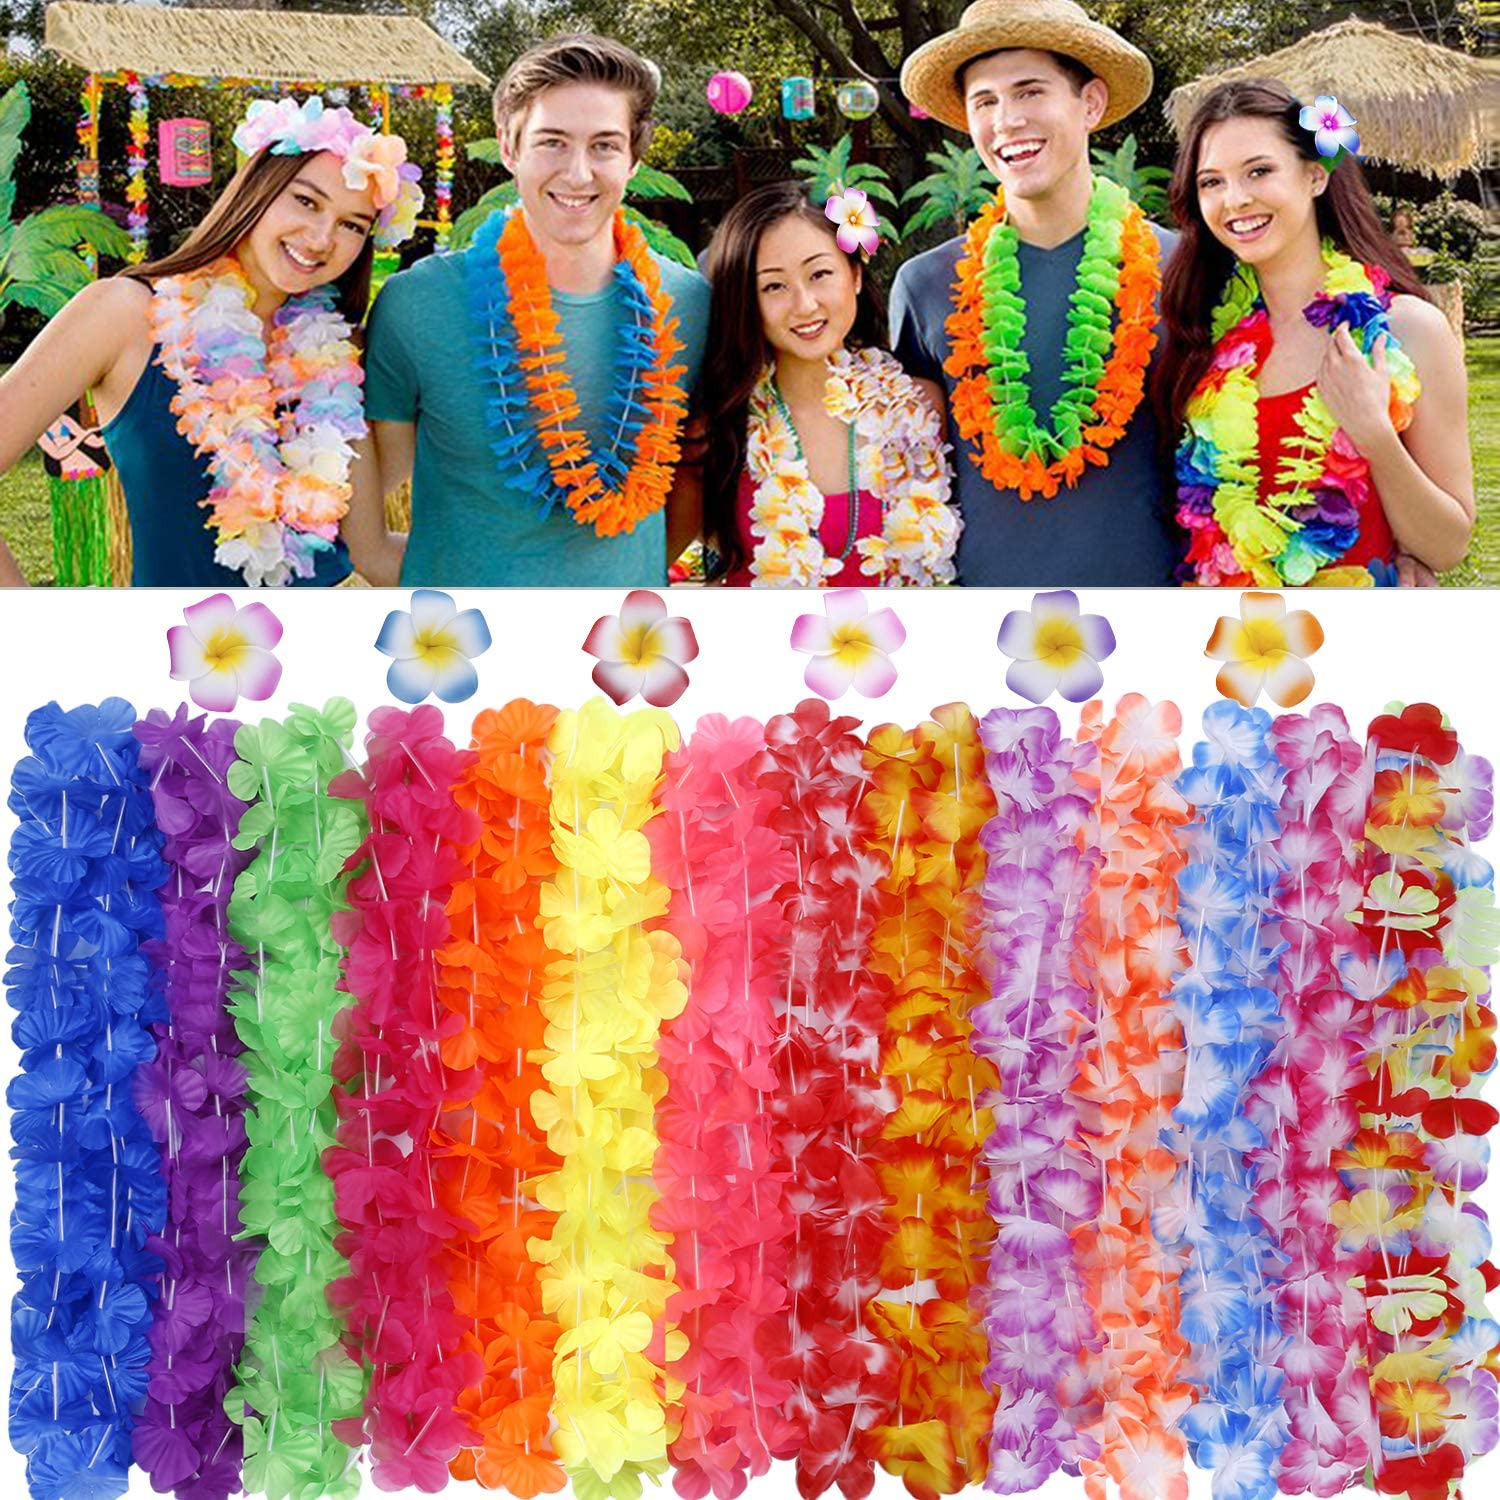 GINMIC Hawaiian Leis, Luau Party Favors Supplies, 50Pcs Tropical Hawaiian Party Necklace with 6 Lei Hair Clips,For Kids or Adults Party Supplies, Summer Beach Vacation, Theme Party Decorations, Birthday, Wedding